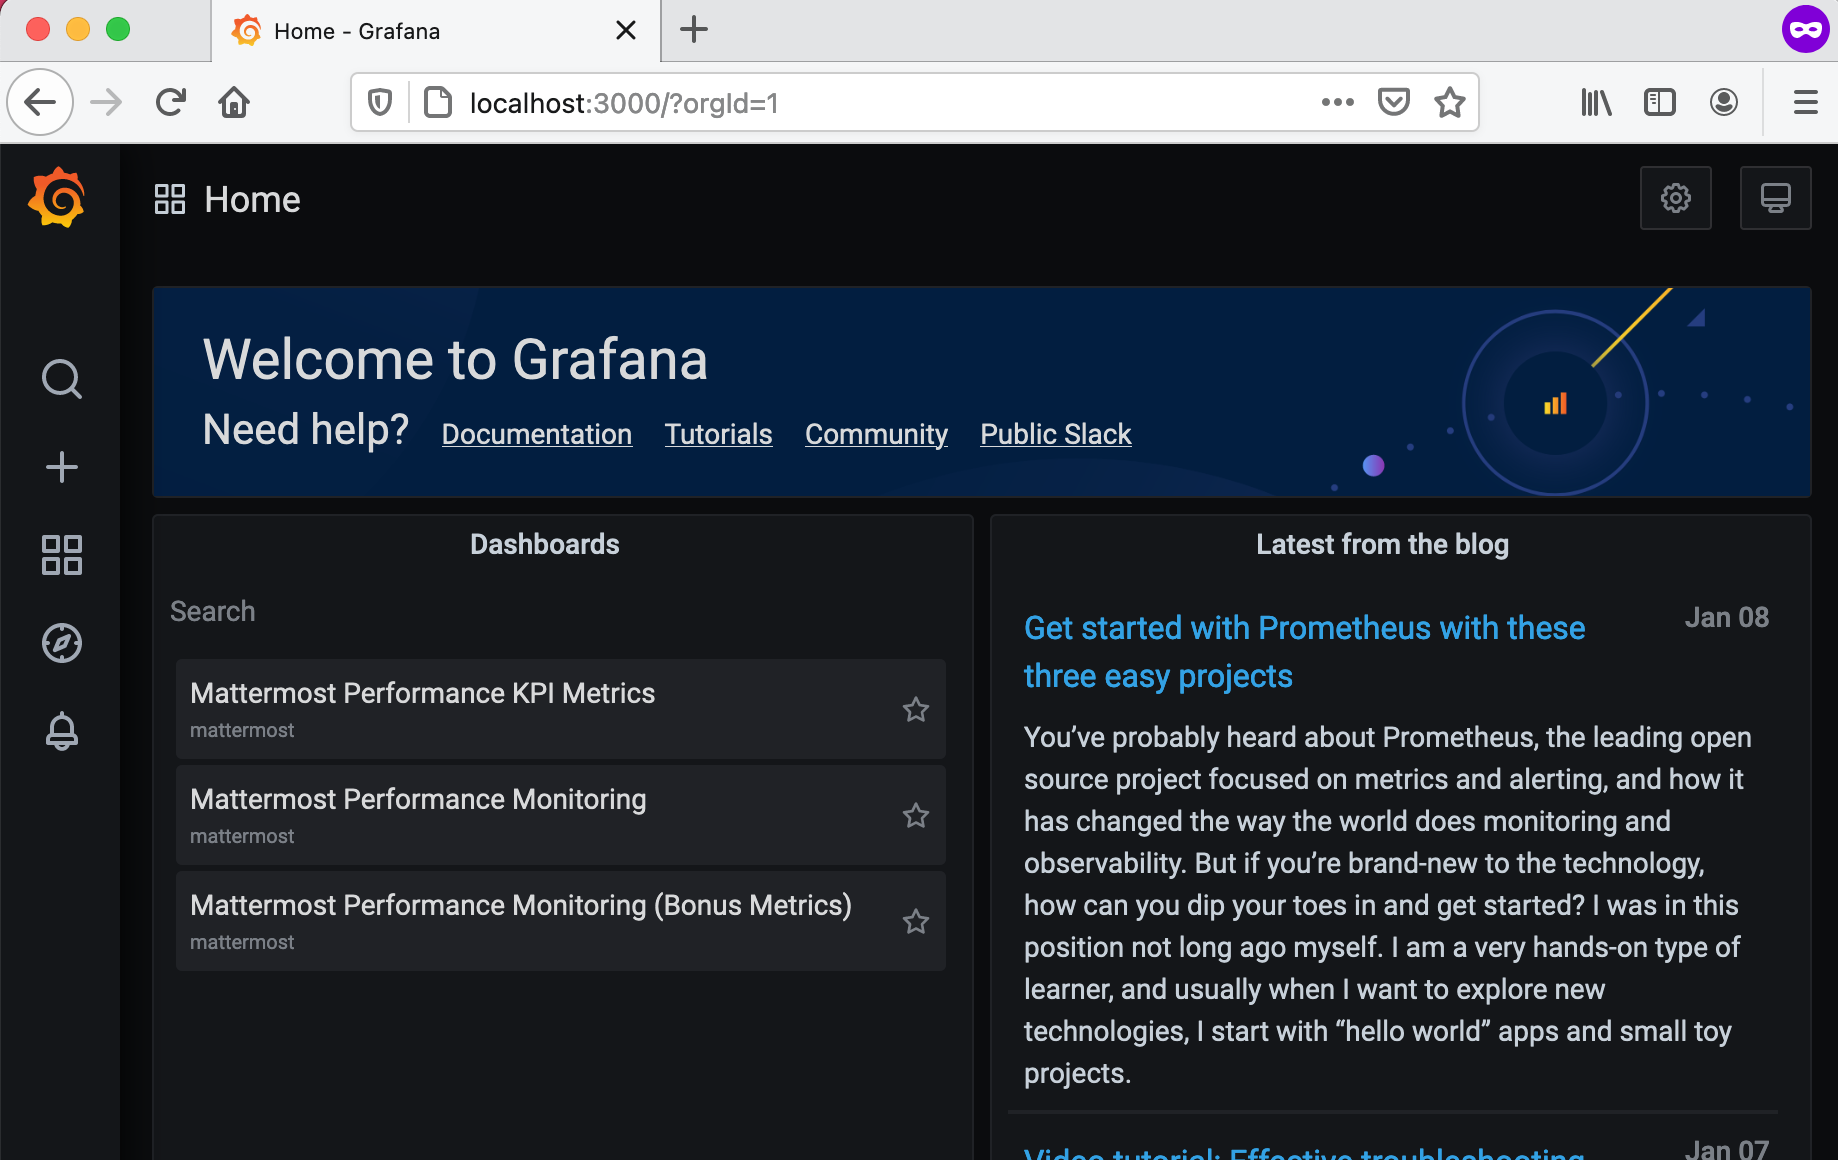 Grafana home dashboard